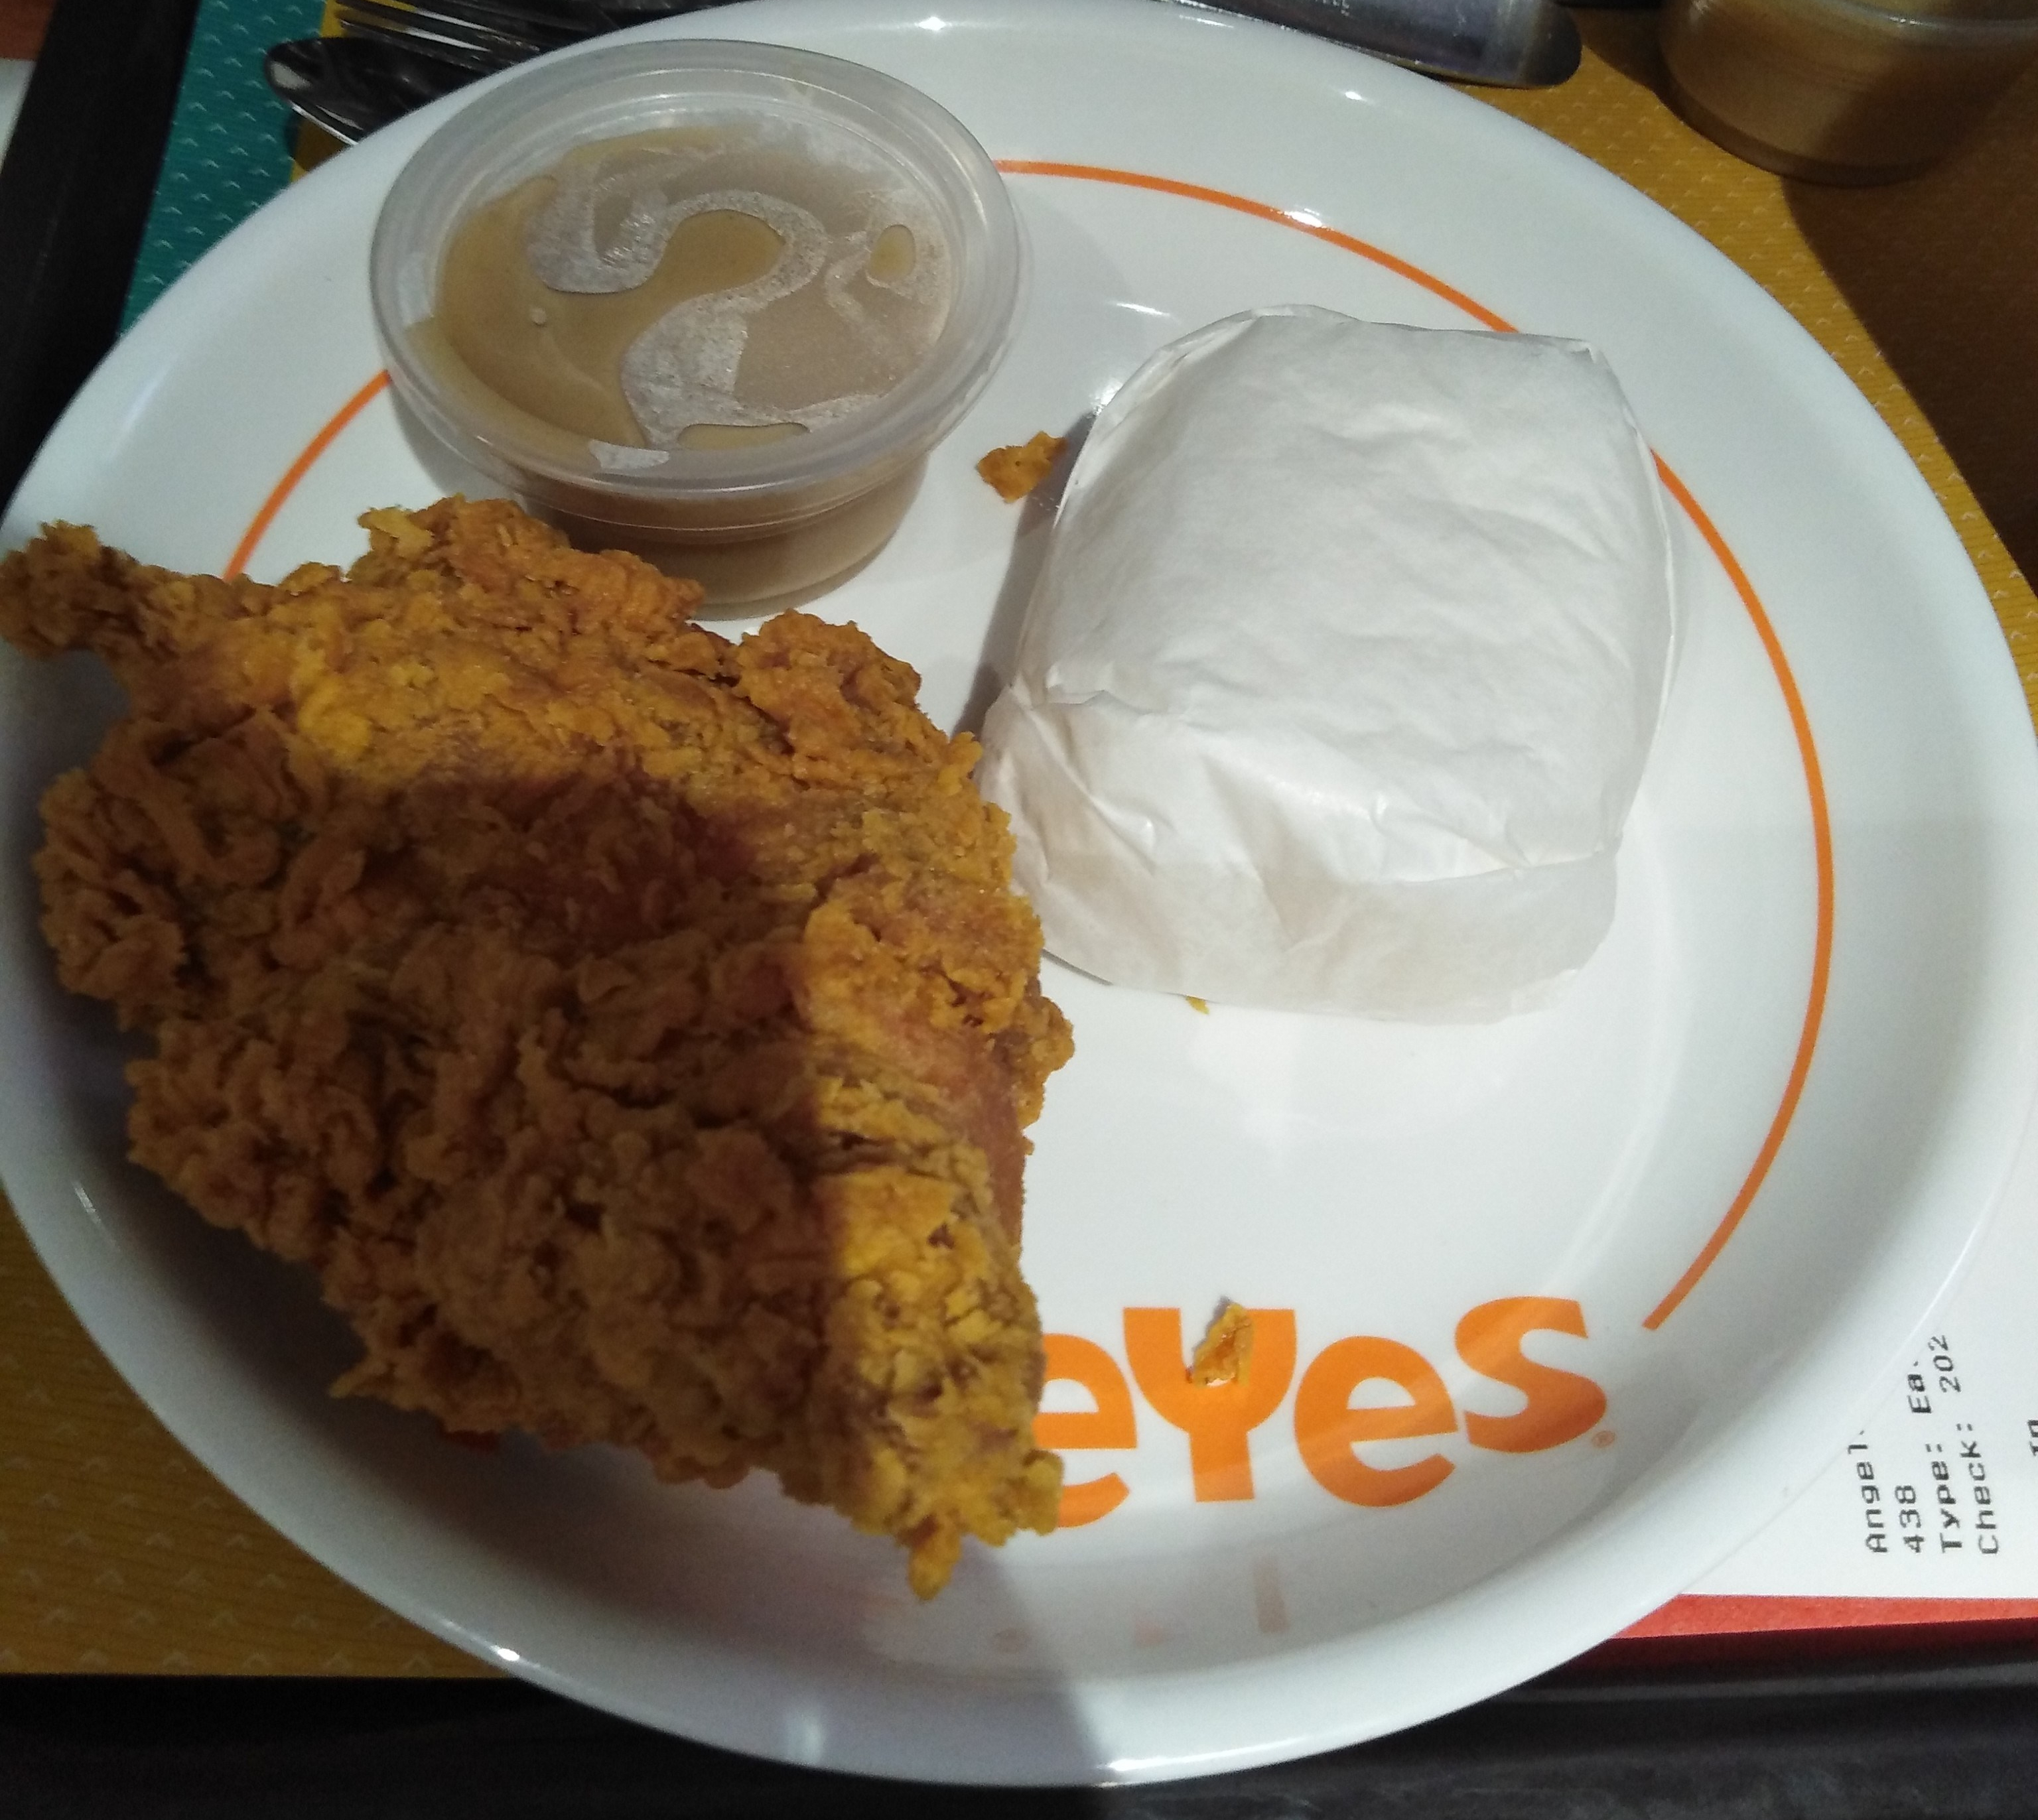 Chicken and Mashed Potato Meal by Popeye's